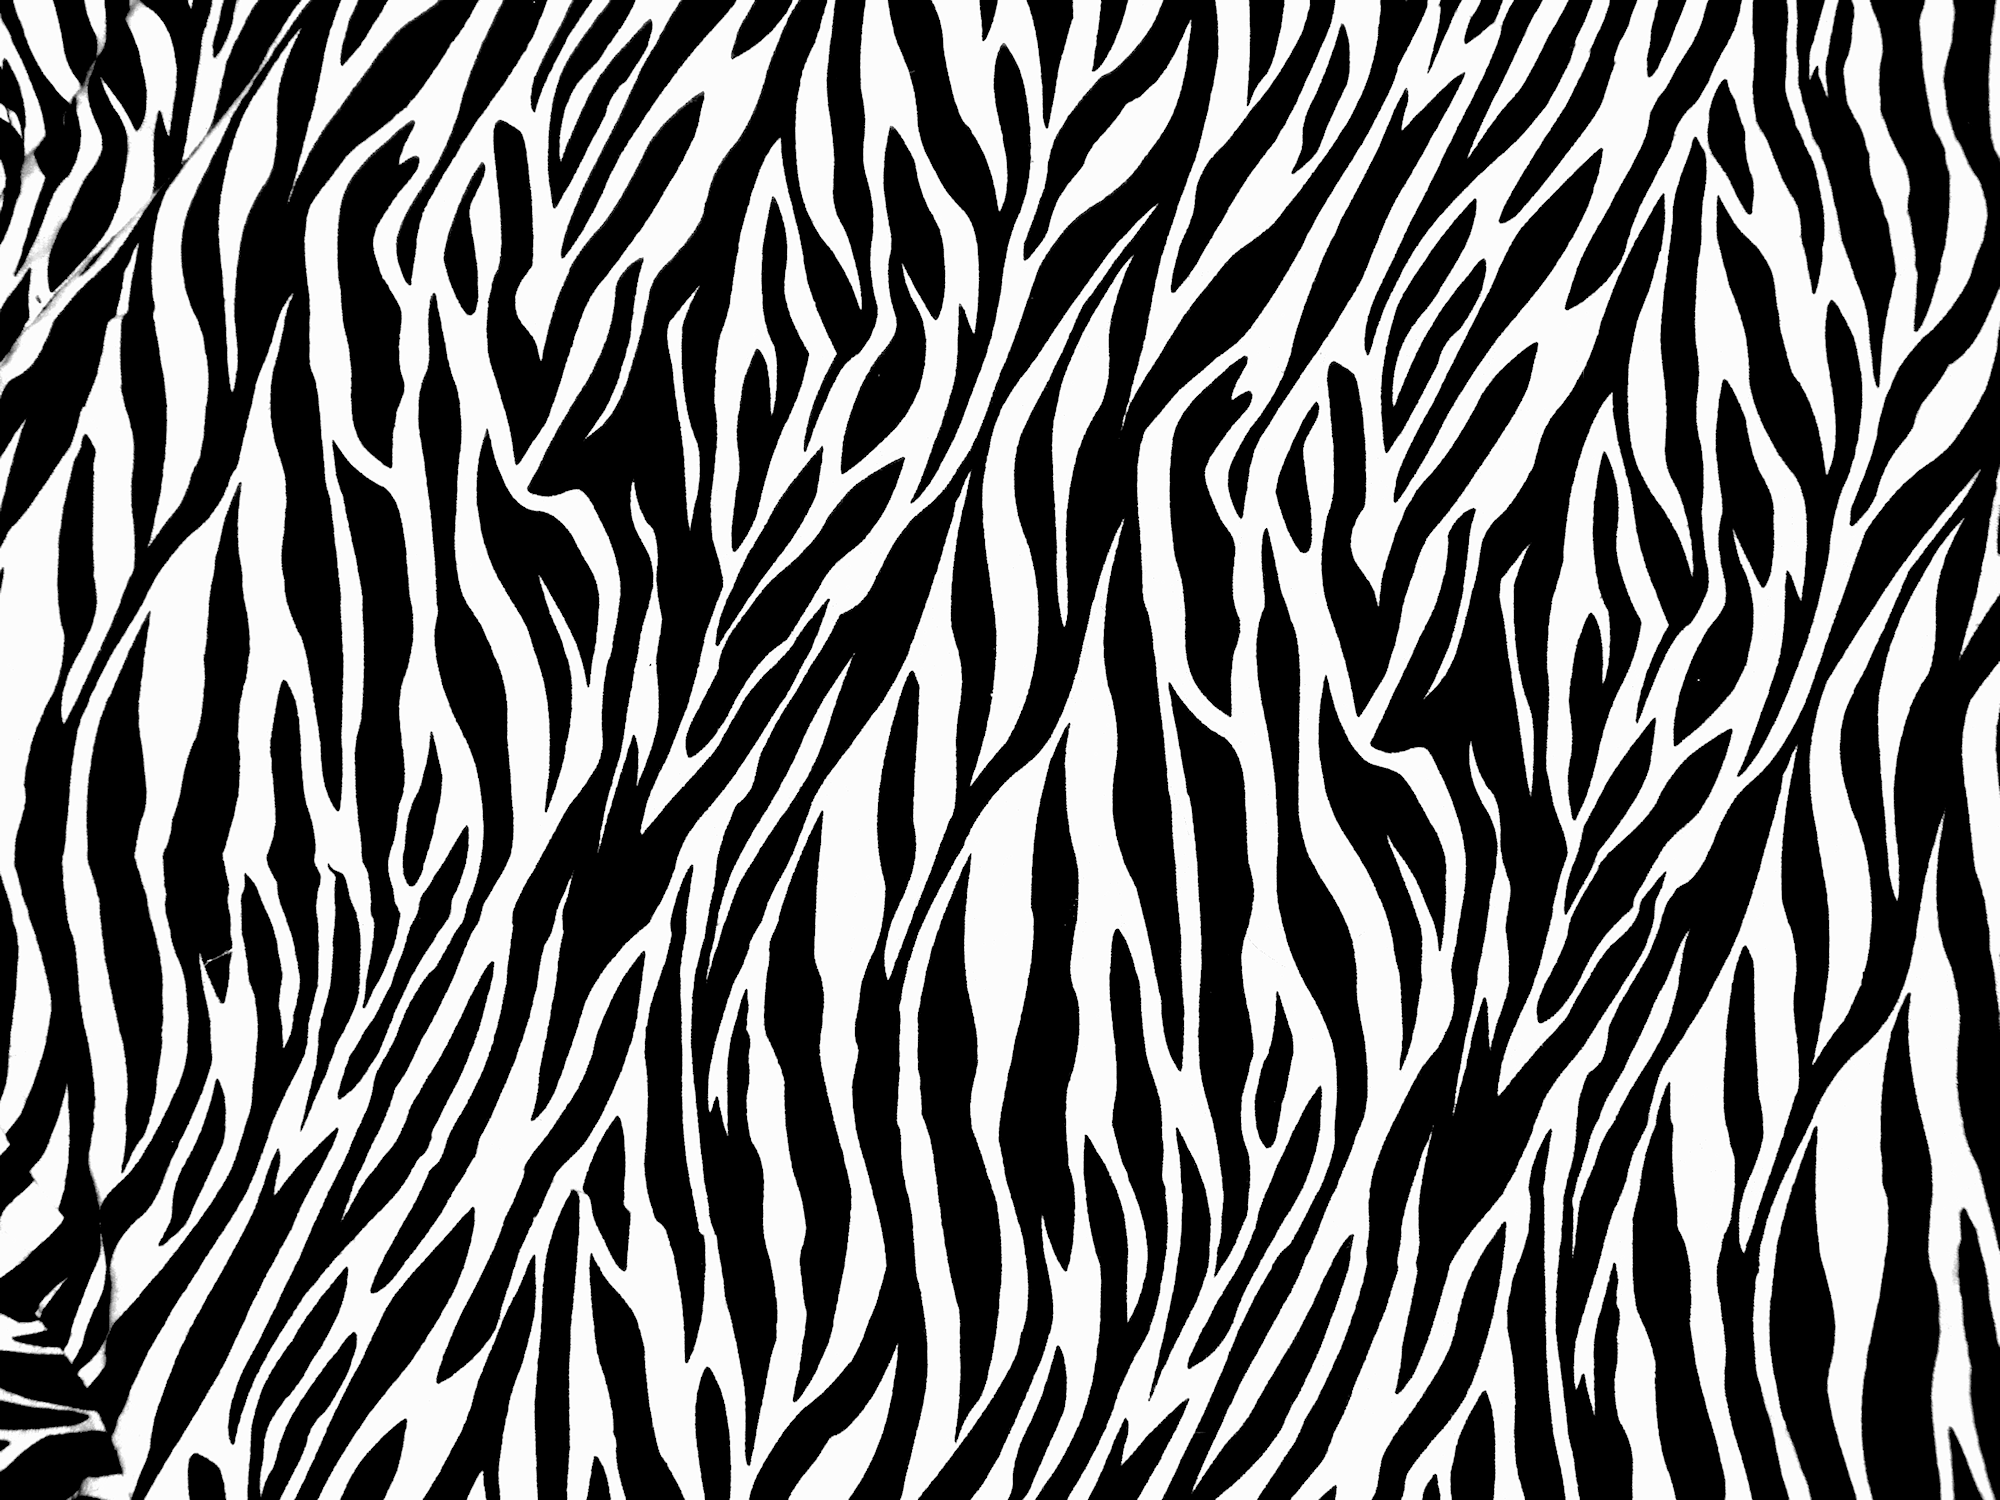 zebra print texture by ghoulskout 2000x1500